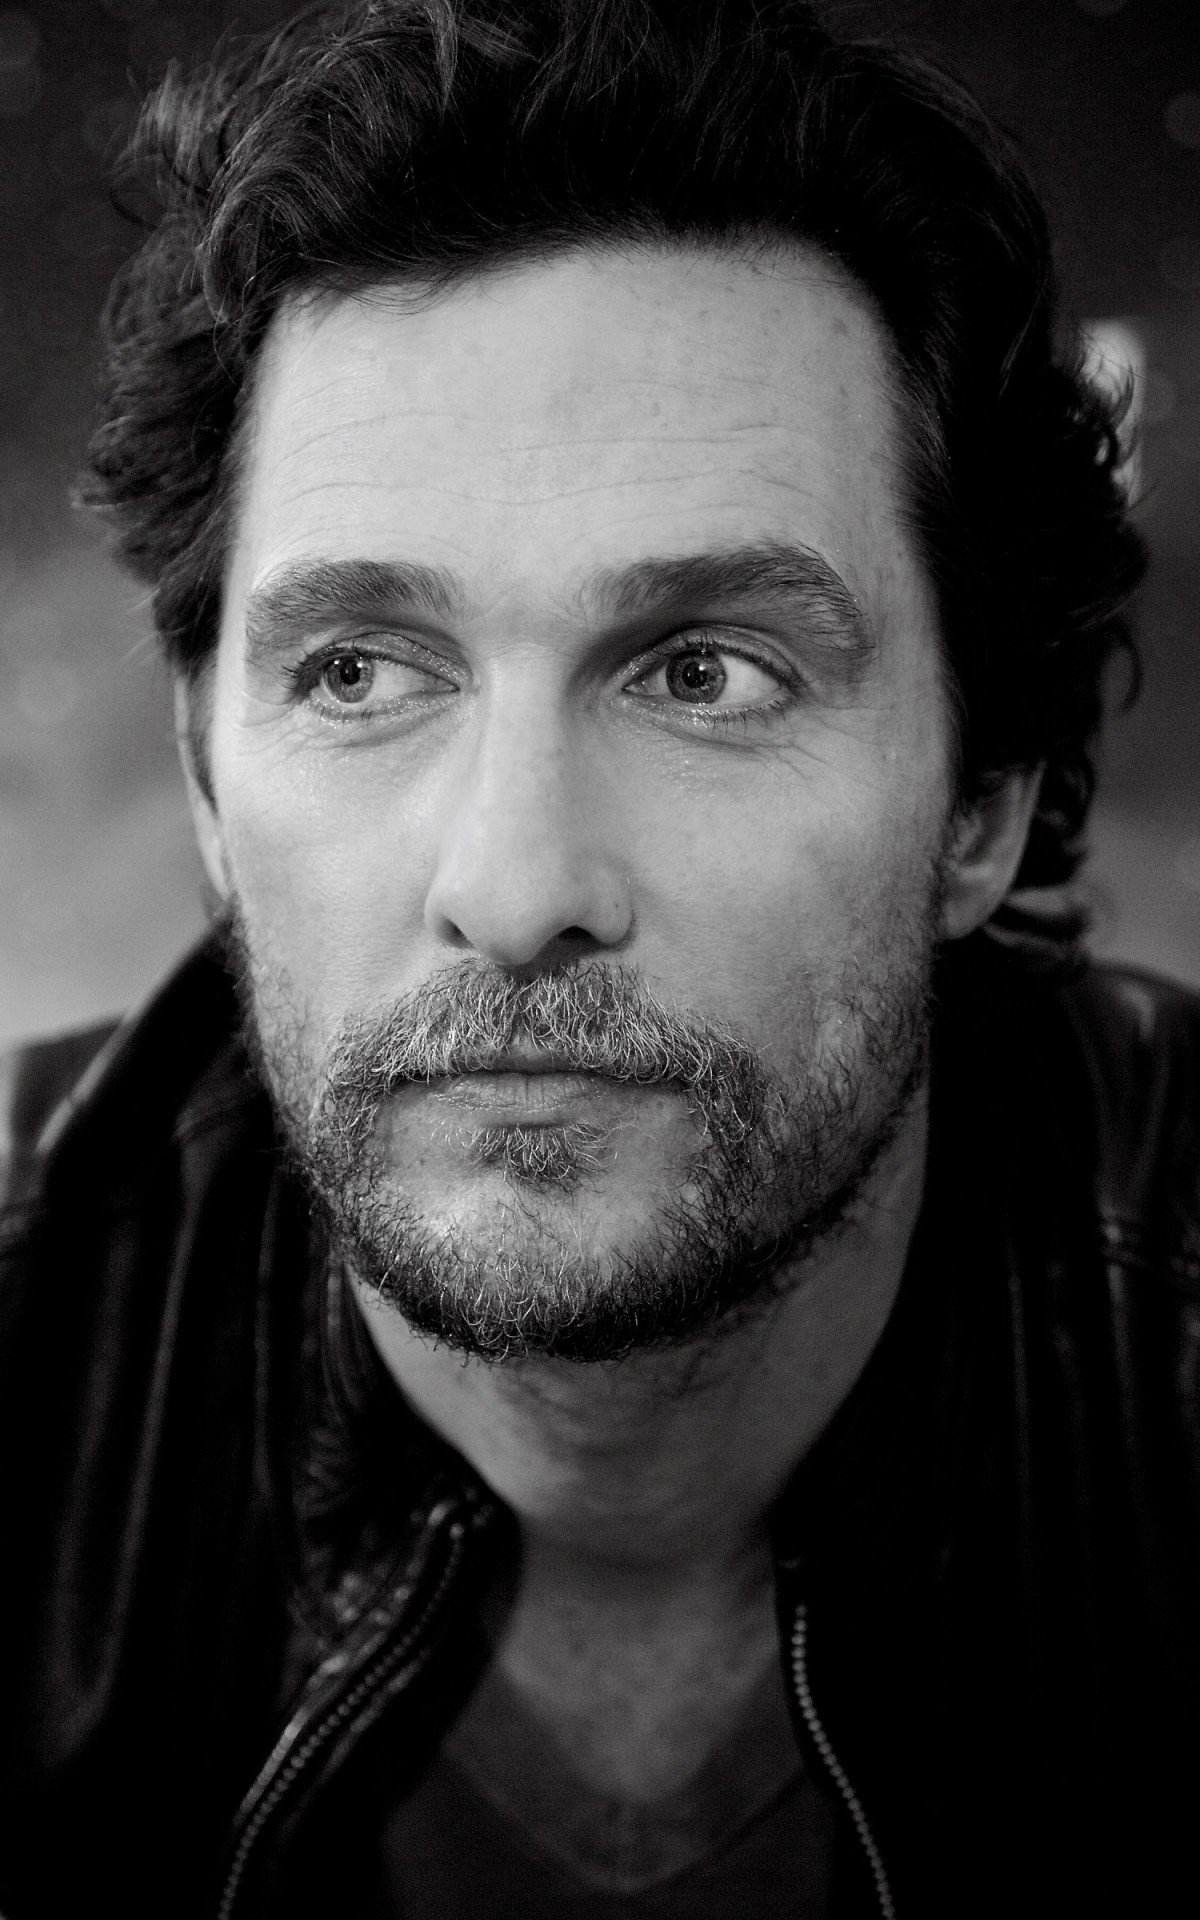 Matthew McConaughey Black & White Portrait Wallpaper for Amazon Kindle Fire HDX